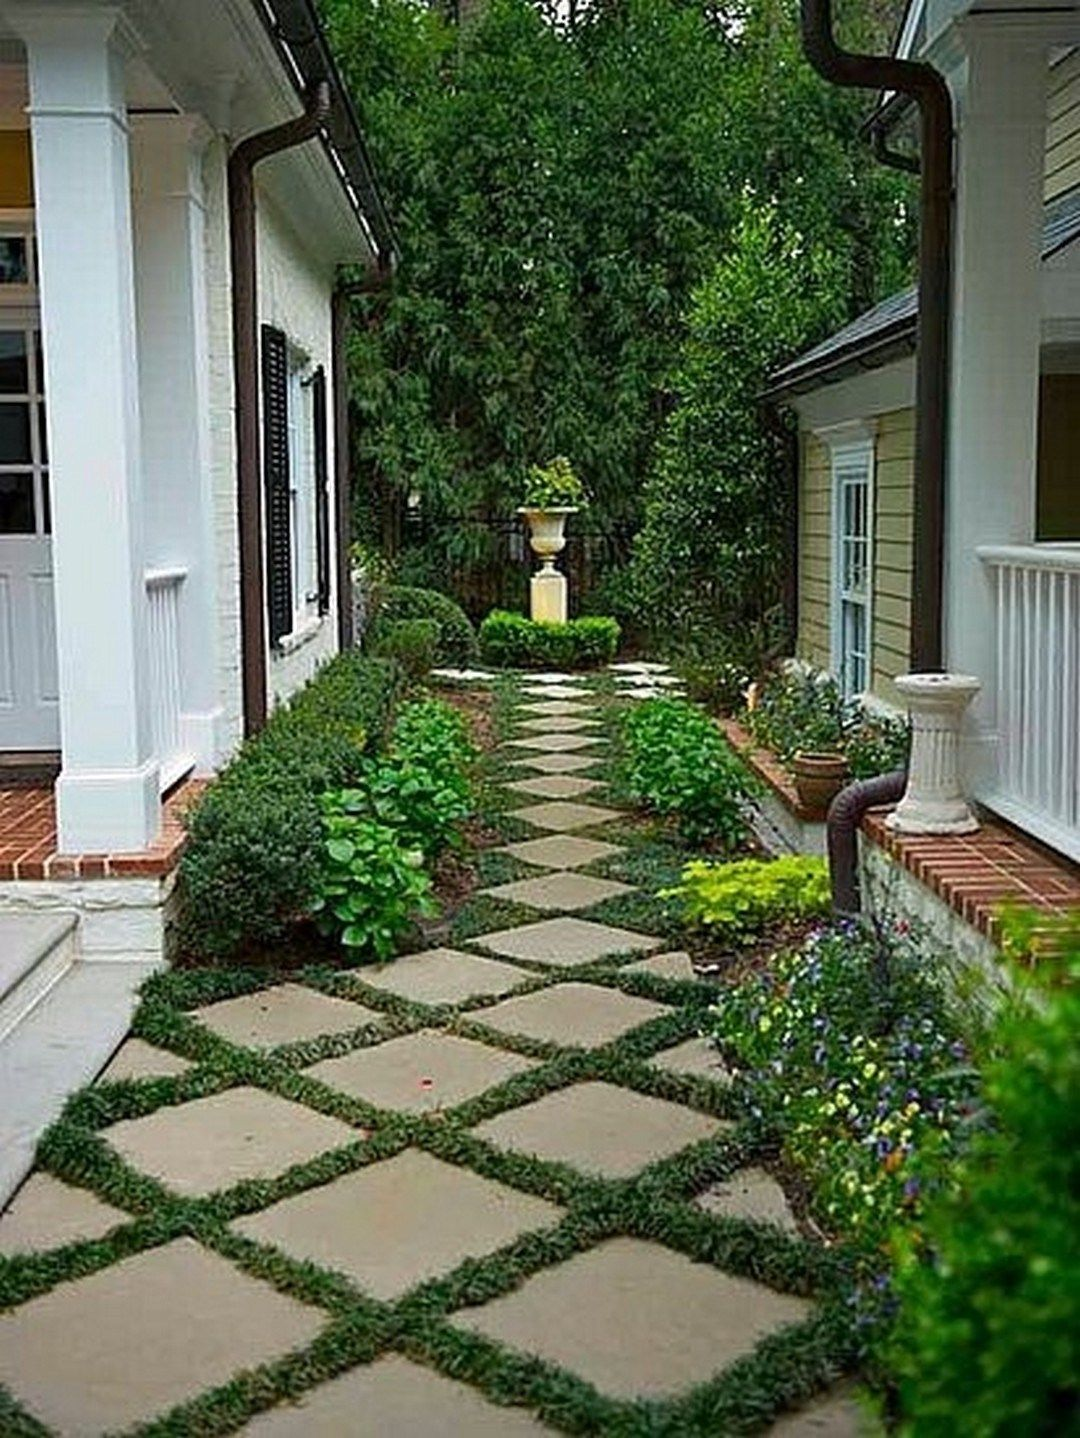 gorgeous front yard courtyard landscaping ideas small on front yard landscaping ideas id=51324